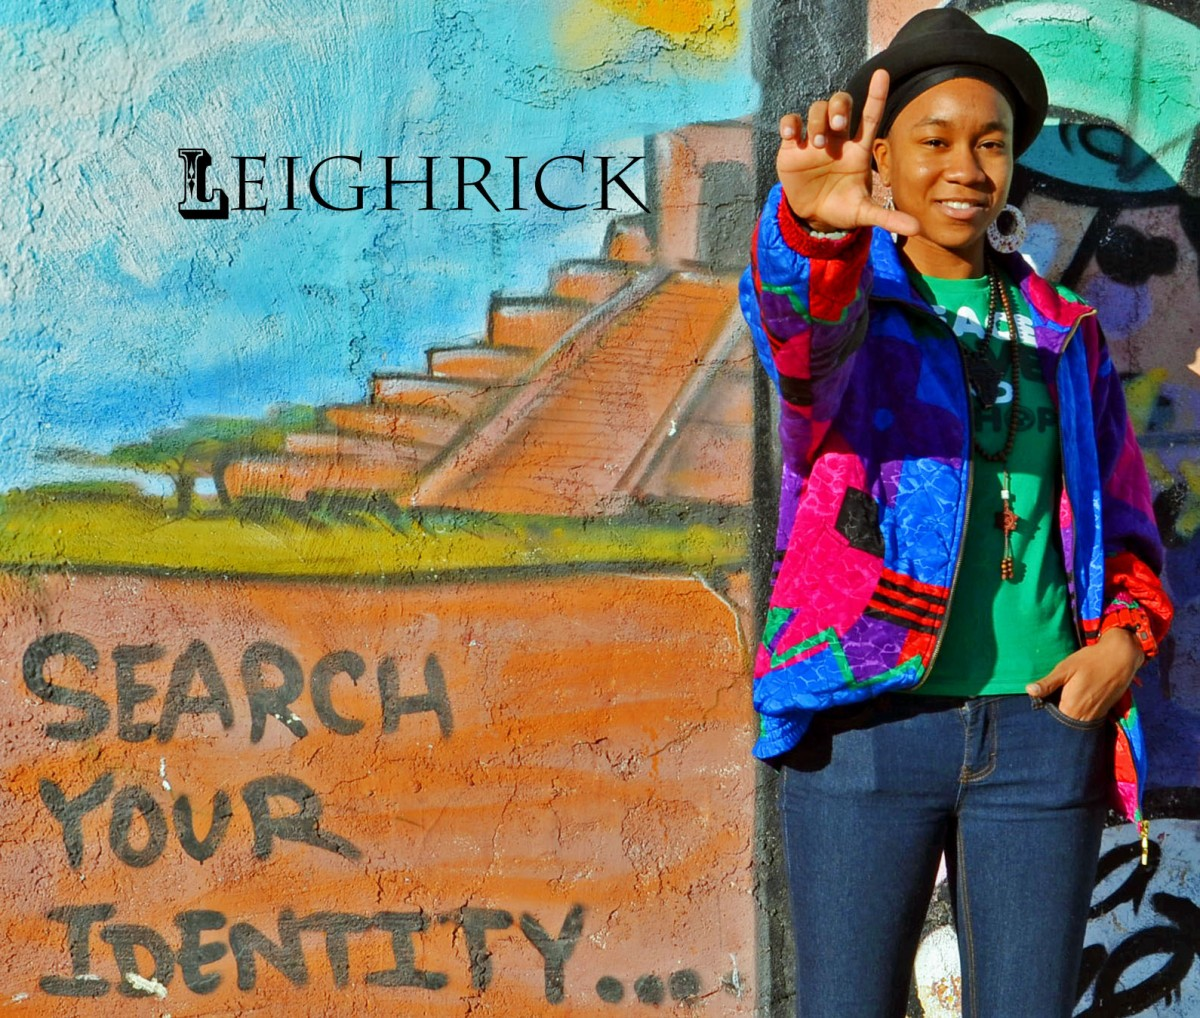 Vigilant Leighrick of iLLFoLK Conglomerate